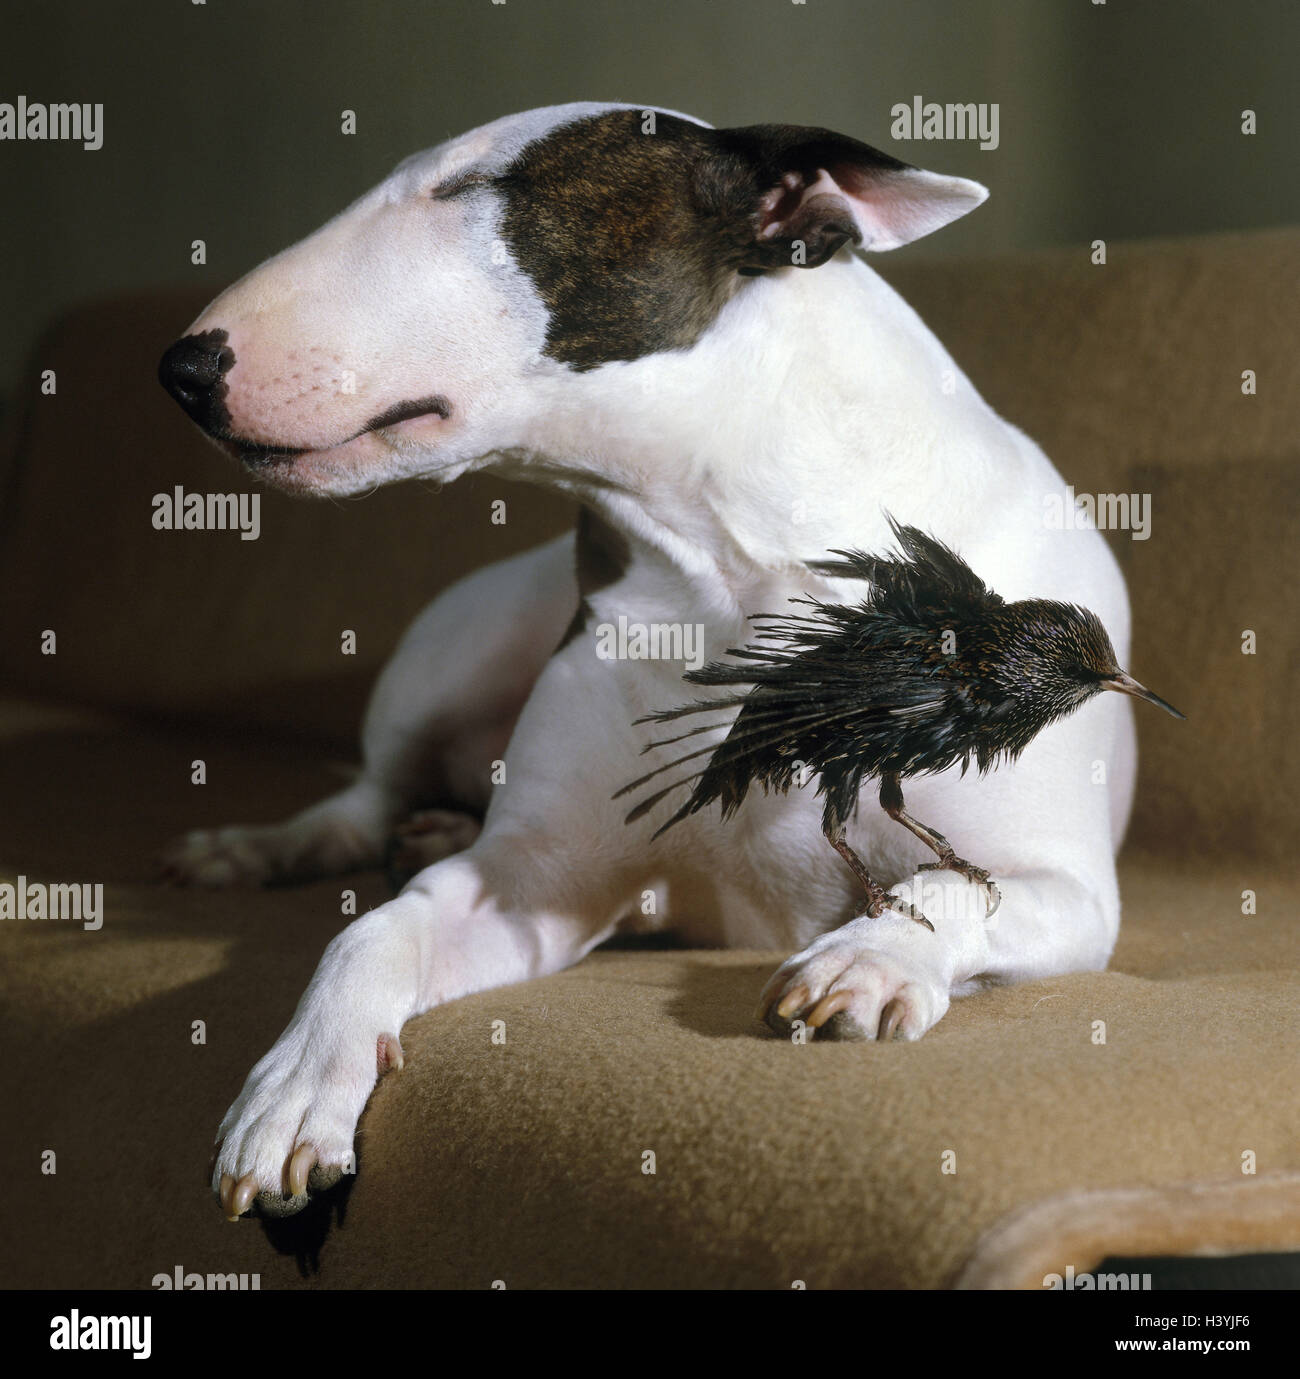 Bull terriers, sofa, lie, ruffle its feathers paw, glaucoma, mammal, dog, pet, animals, accompanying dog, dog breed, - Stock Image